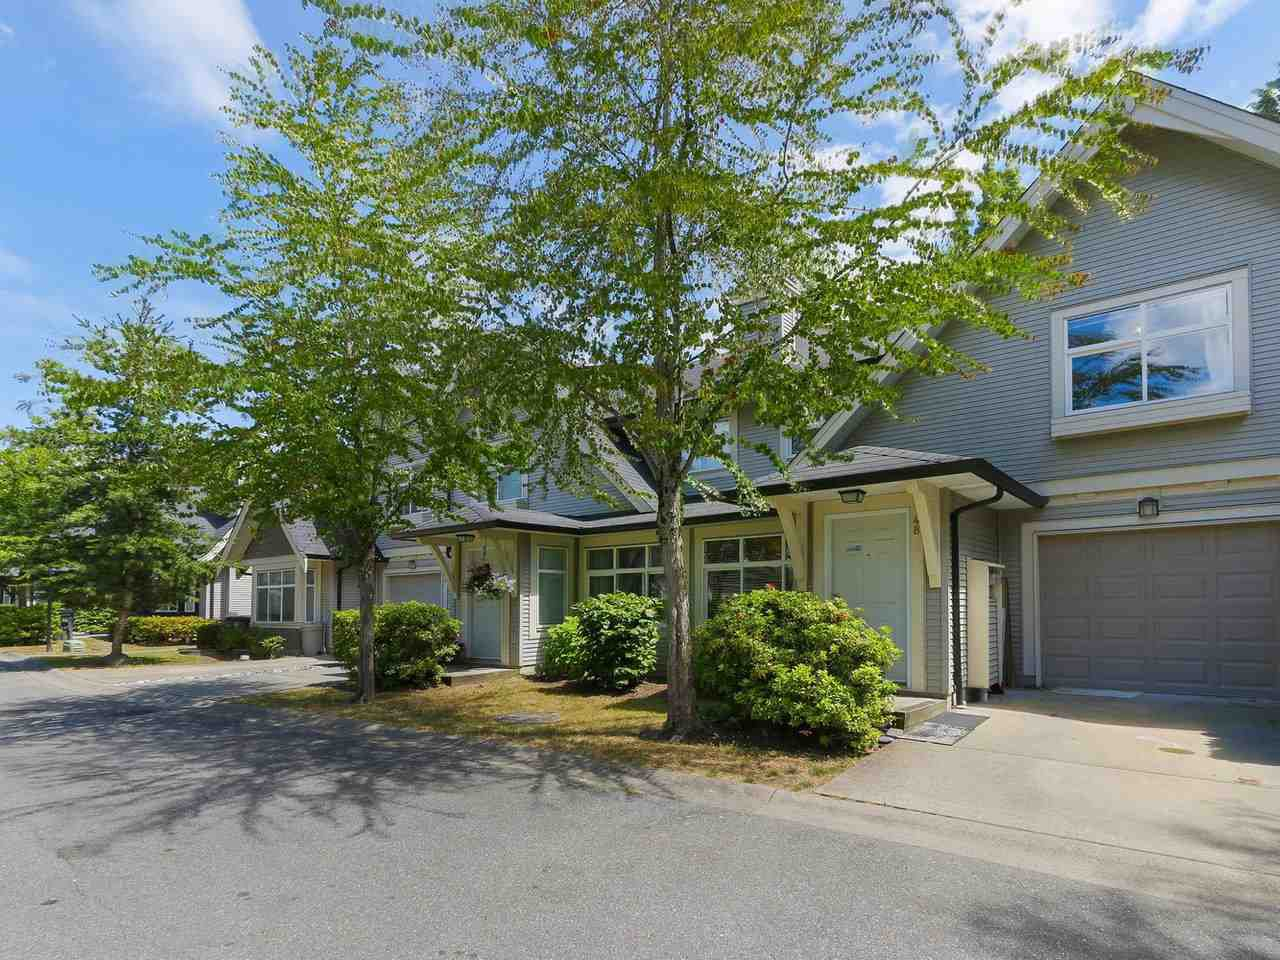 "Main Photo: 48 15968 82 Avenue in Surrey: Fleetwood Tynehead Townhouse for sale in ""SHERLBORNE LANE"" : MLS®# R2381033"